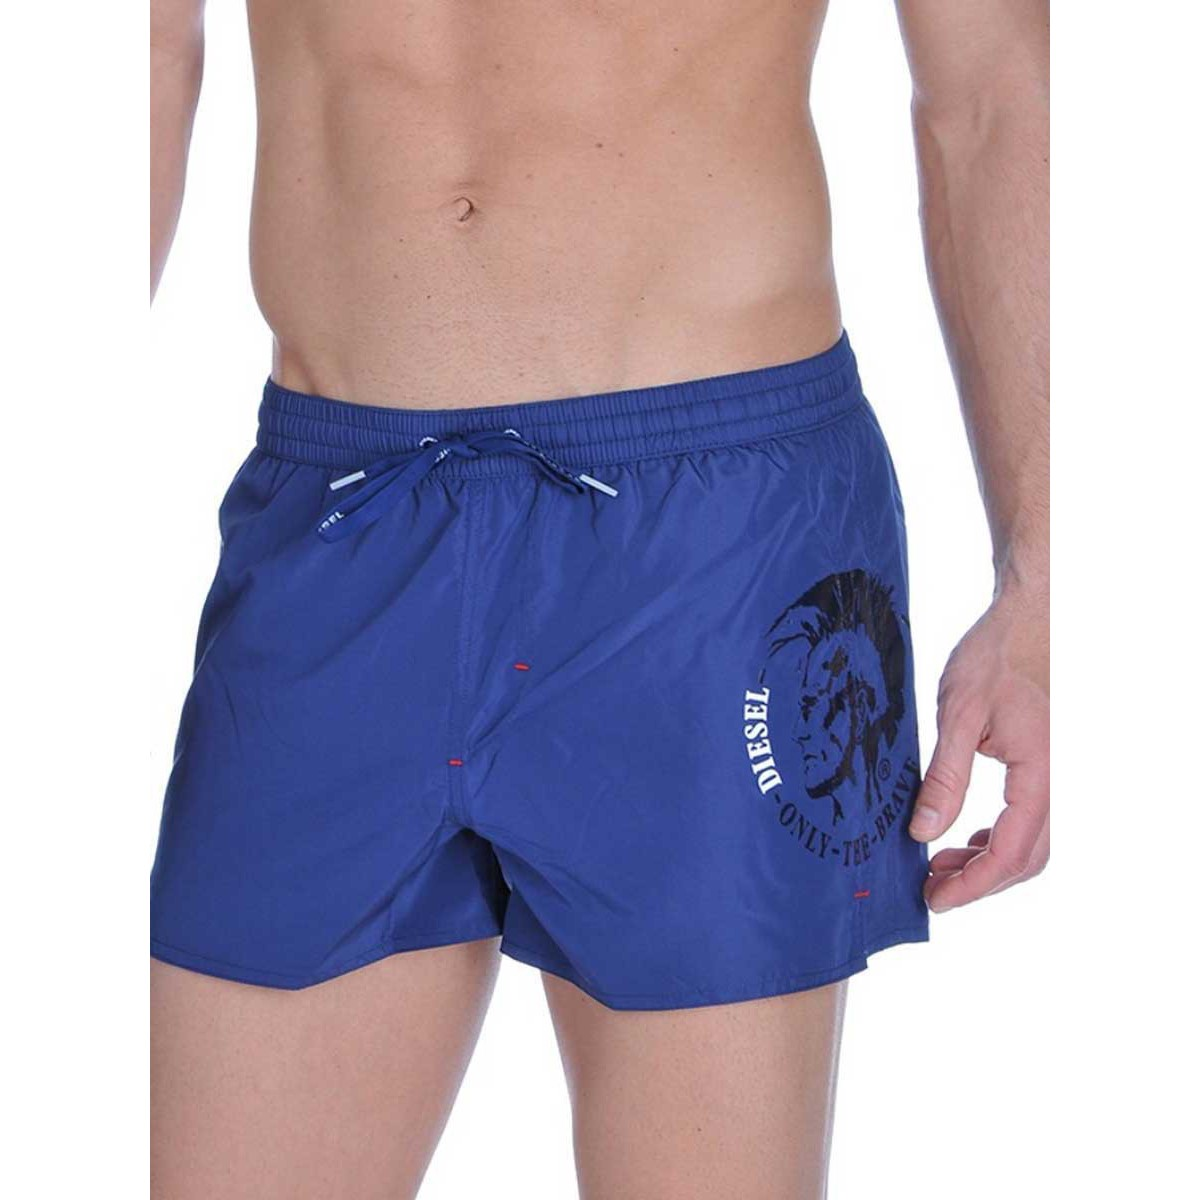 new style look out for release date Diesel |Short de bain maillot coralrif noir collection